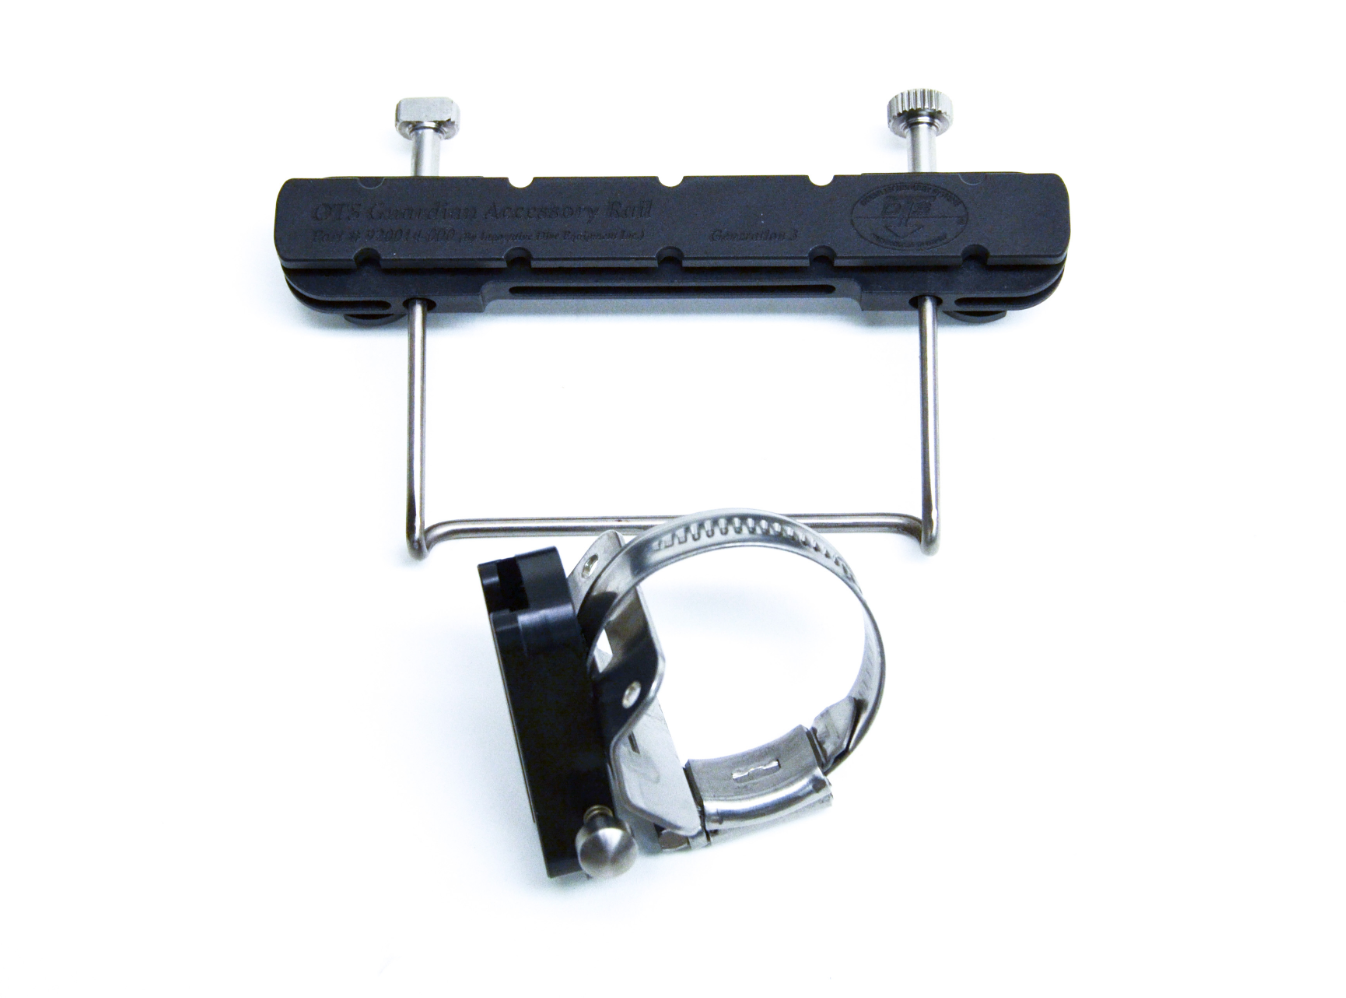 OTS Accessory Rail Universal System (Includes Rail & Universal Slide)